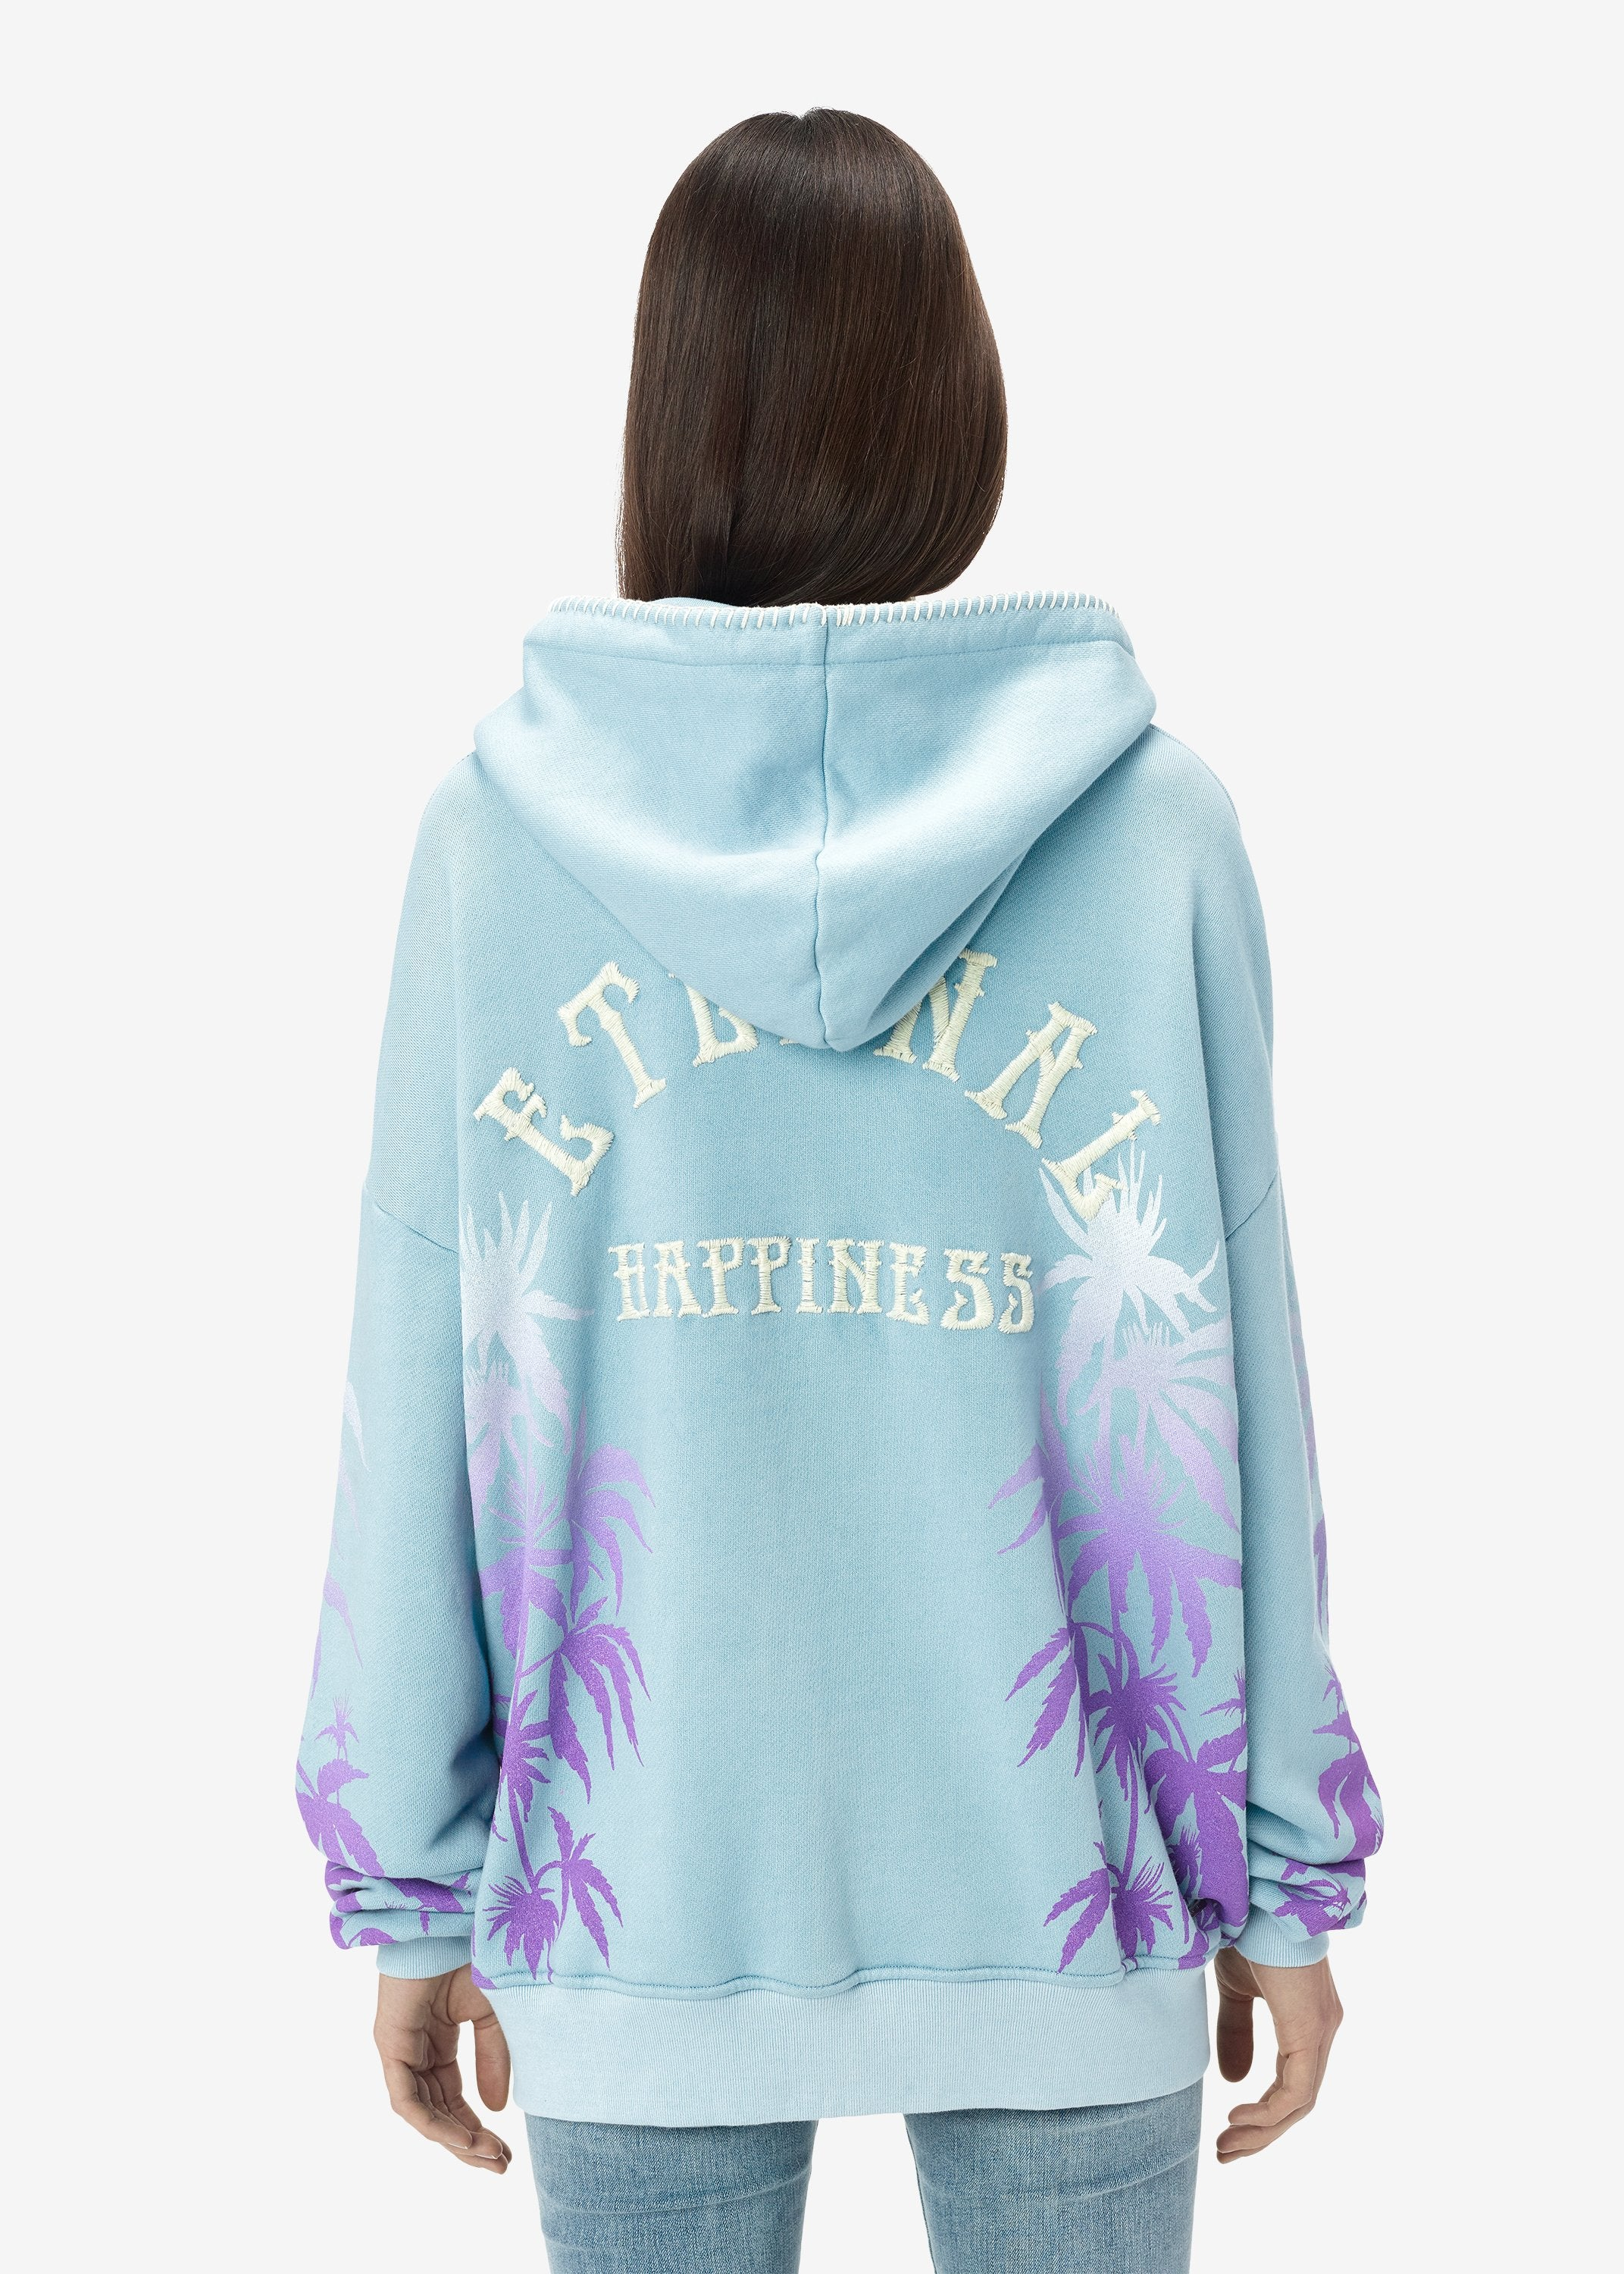 eternal-happiness-hoodie-light-blue-image-3